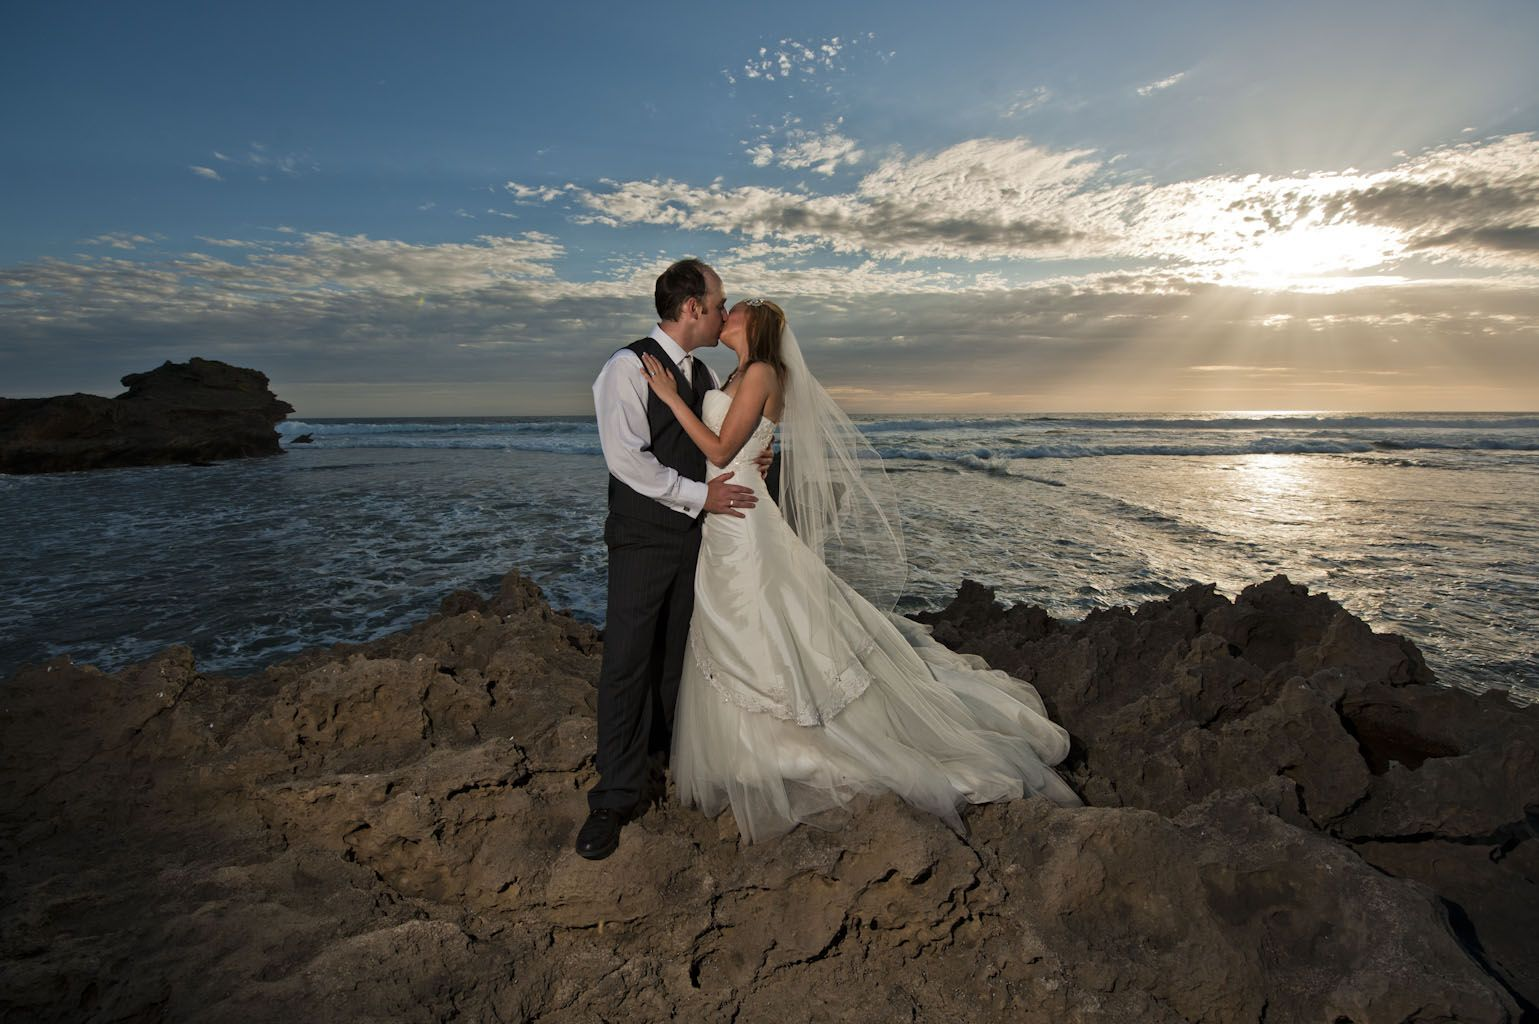 A bride and groom are shown with a beautiful sunset on an ocean beach.